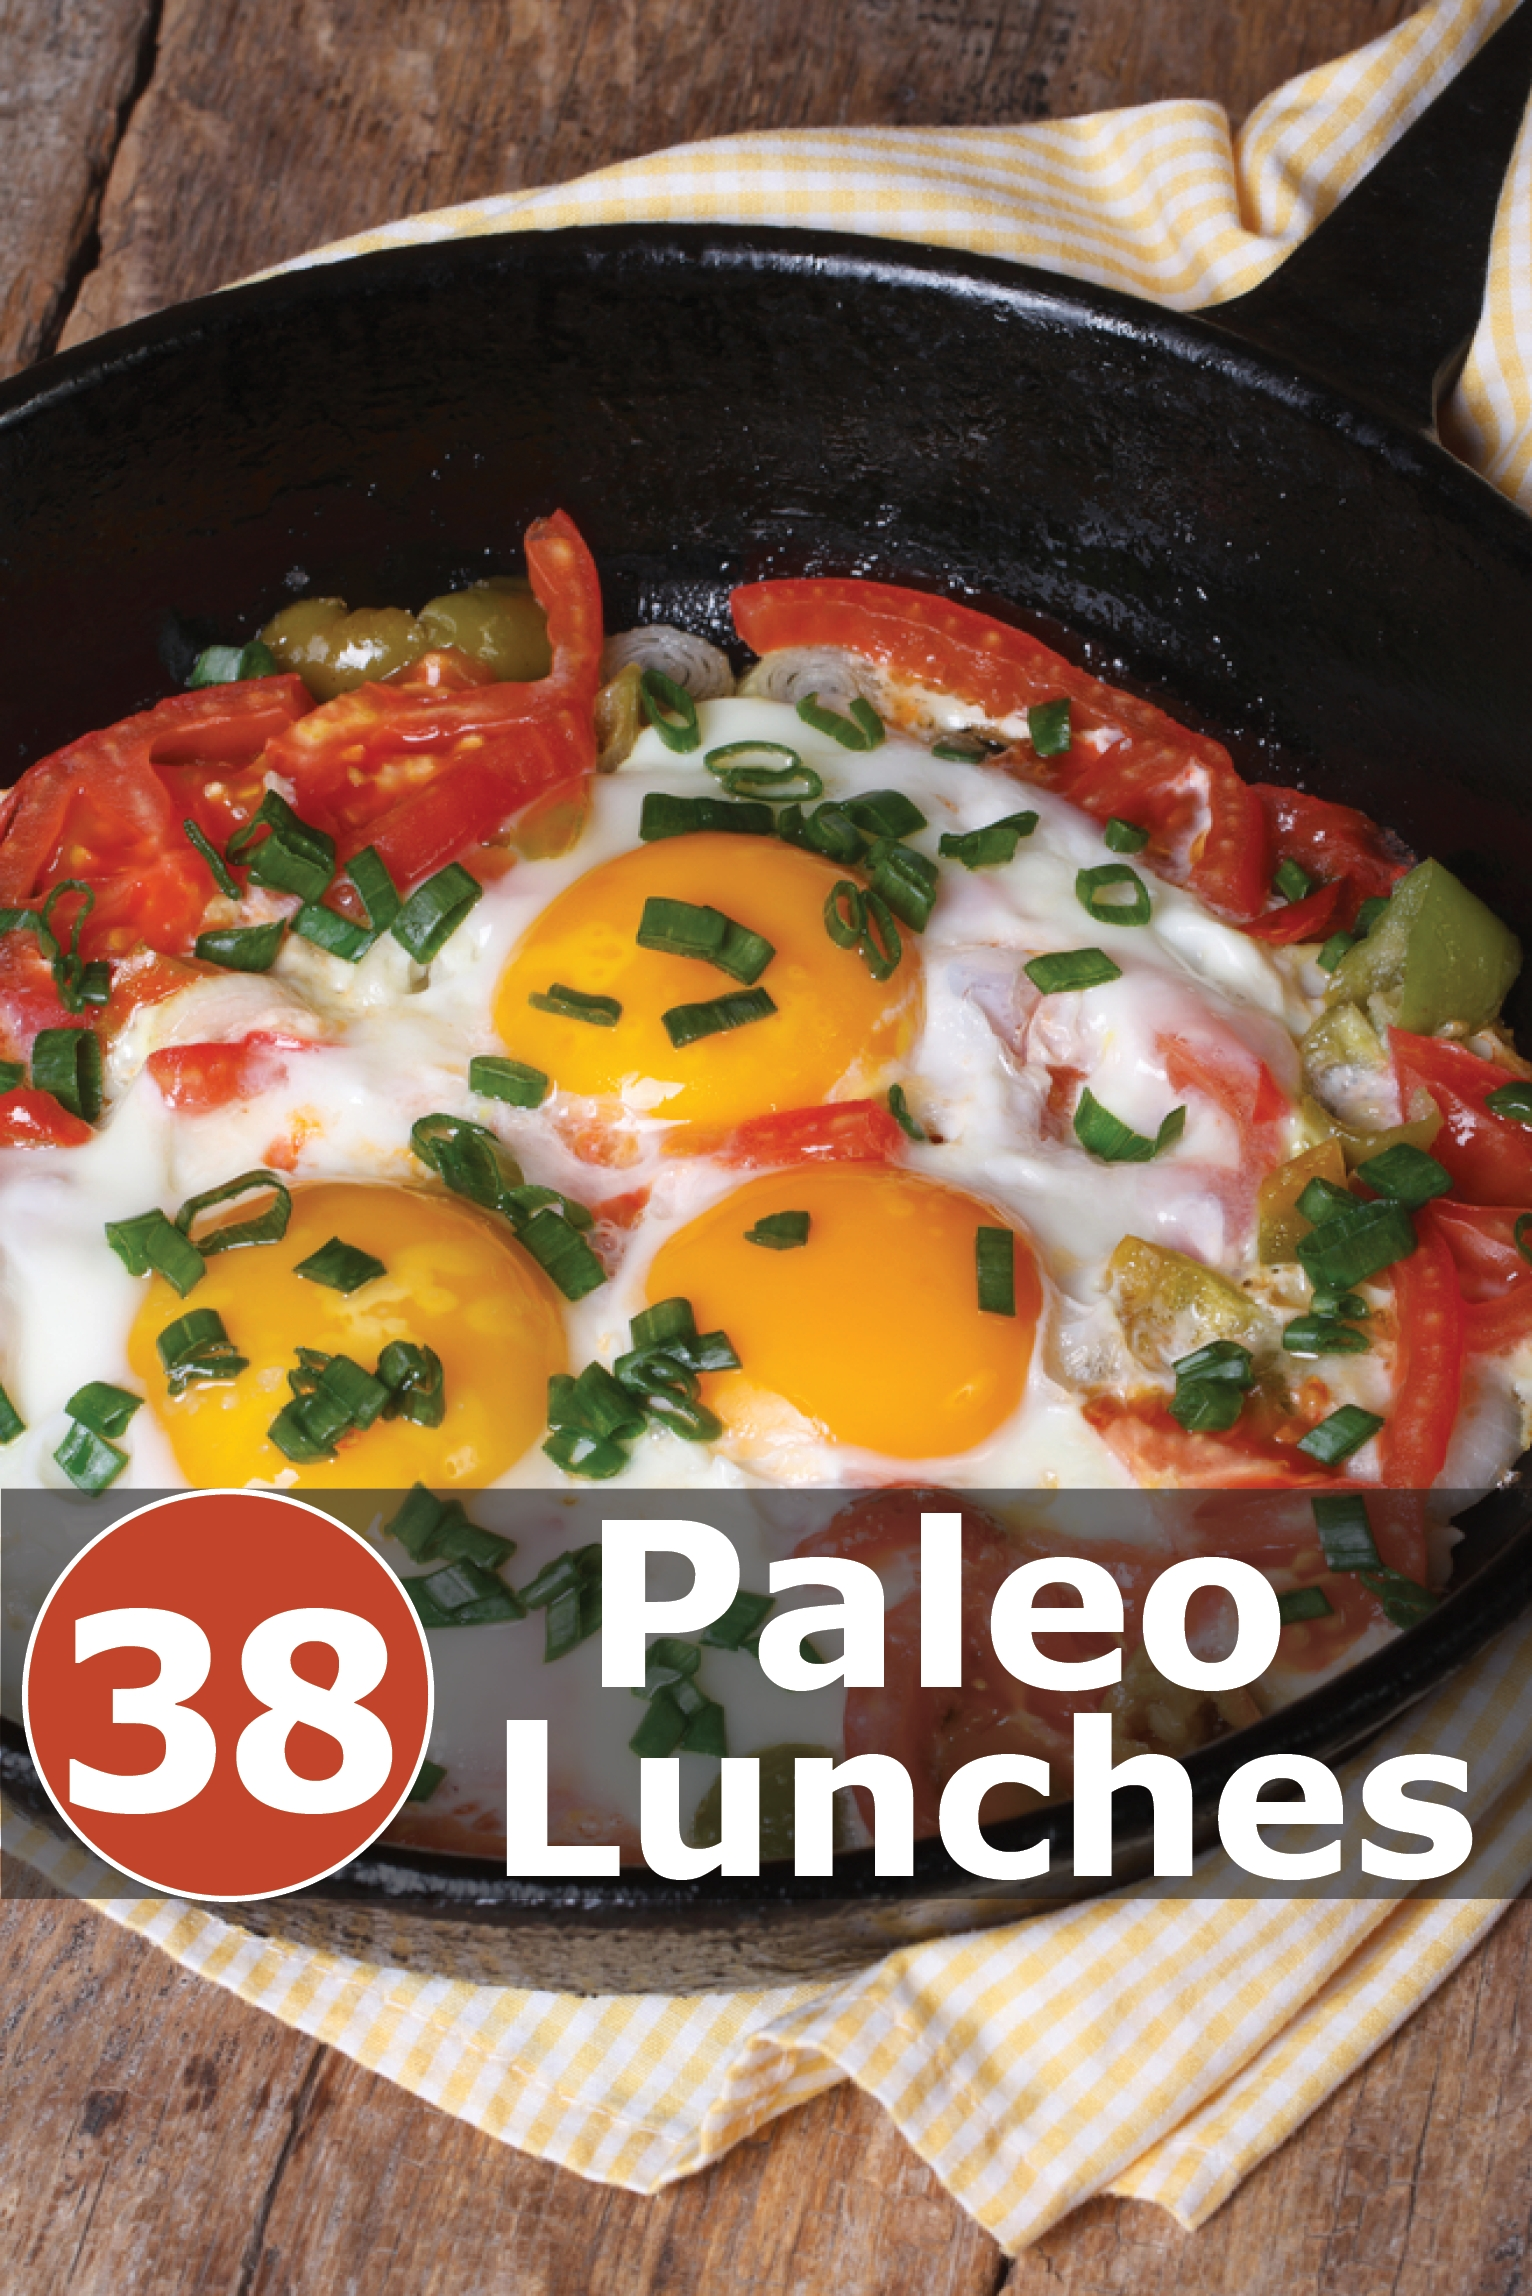 10 Lovable Paleo Lunch Ideas For Work 38 scrumptious paleo lunch recipes you should try today eat live life